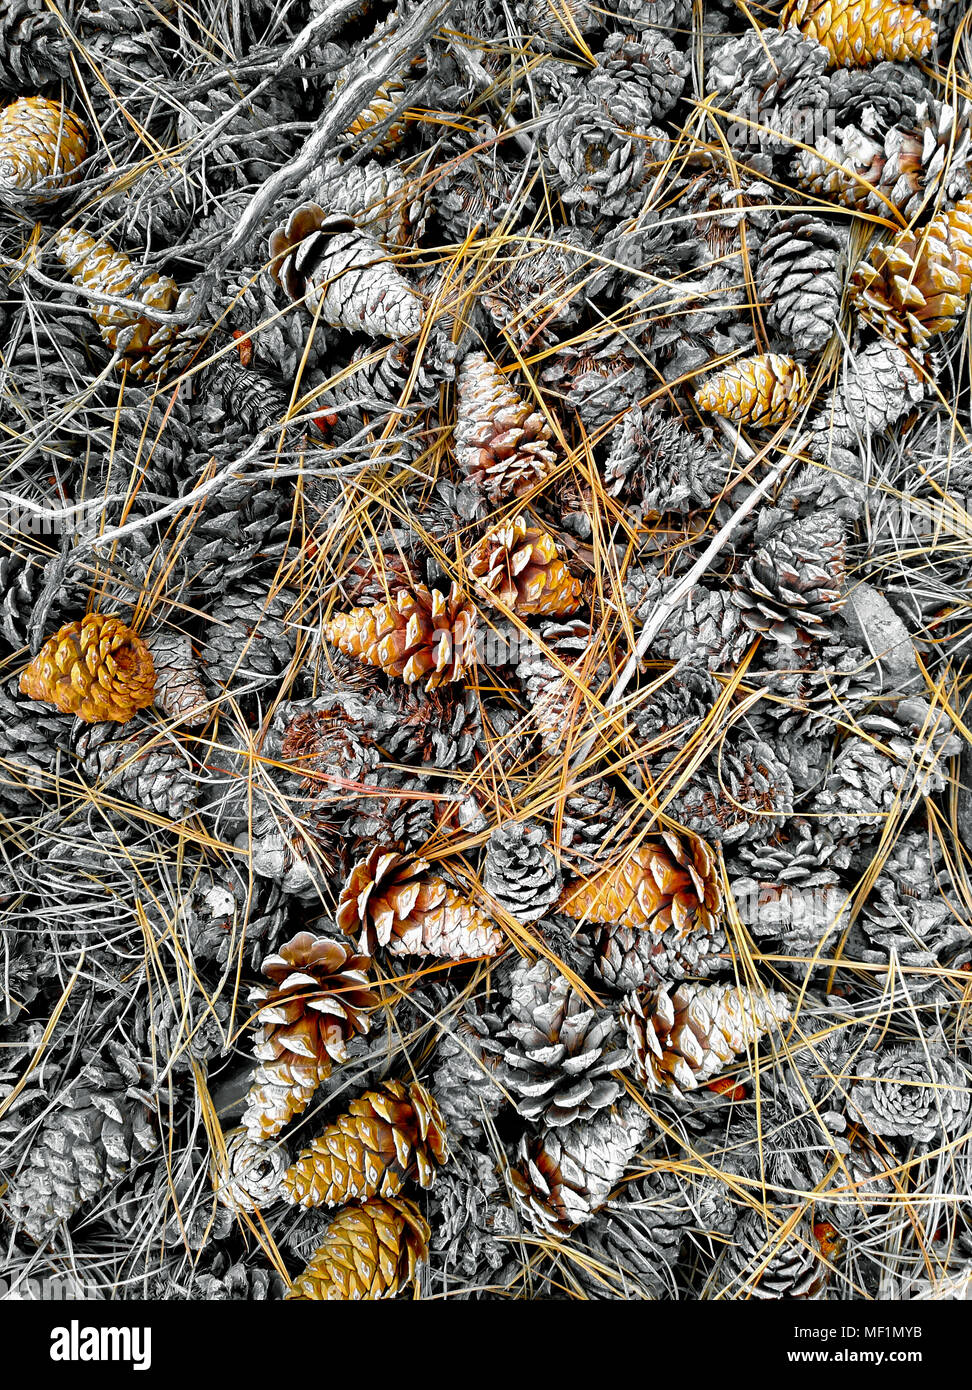 Pine cones and pine needles on the ground in the forest in the Okanagan Valley, British Columbia, Canada. - Stock Image